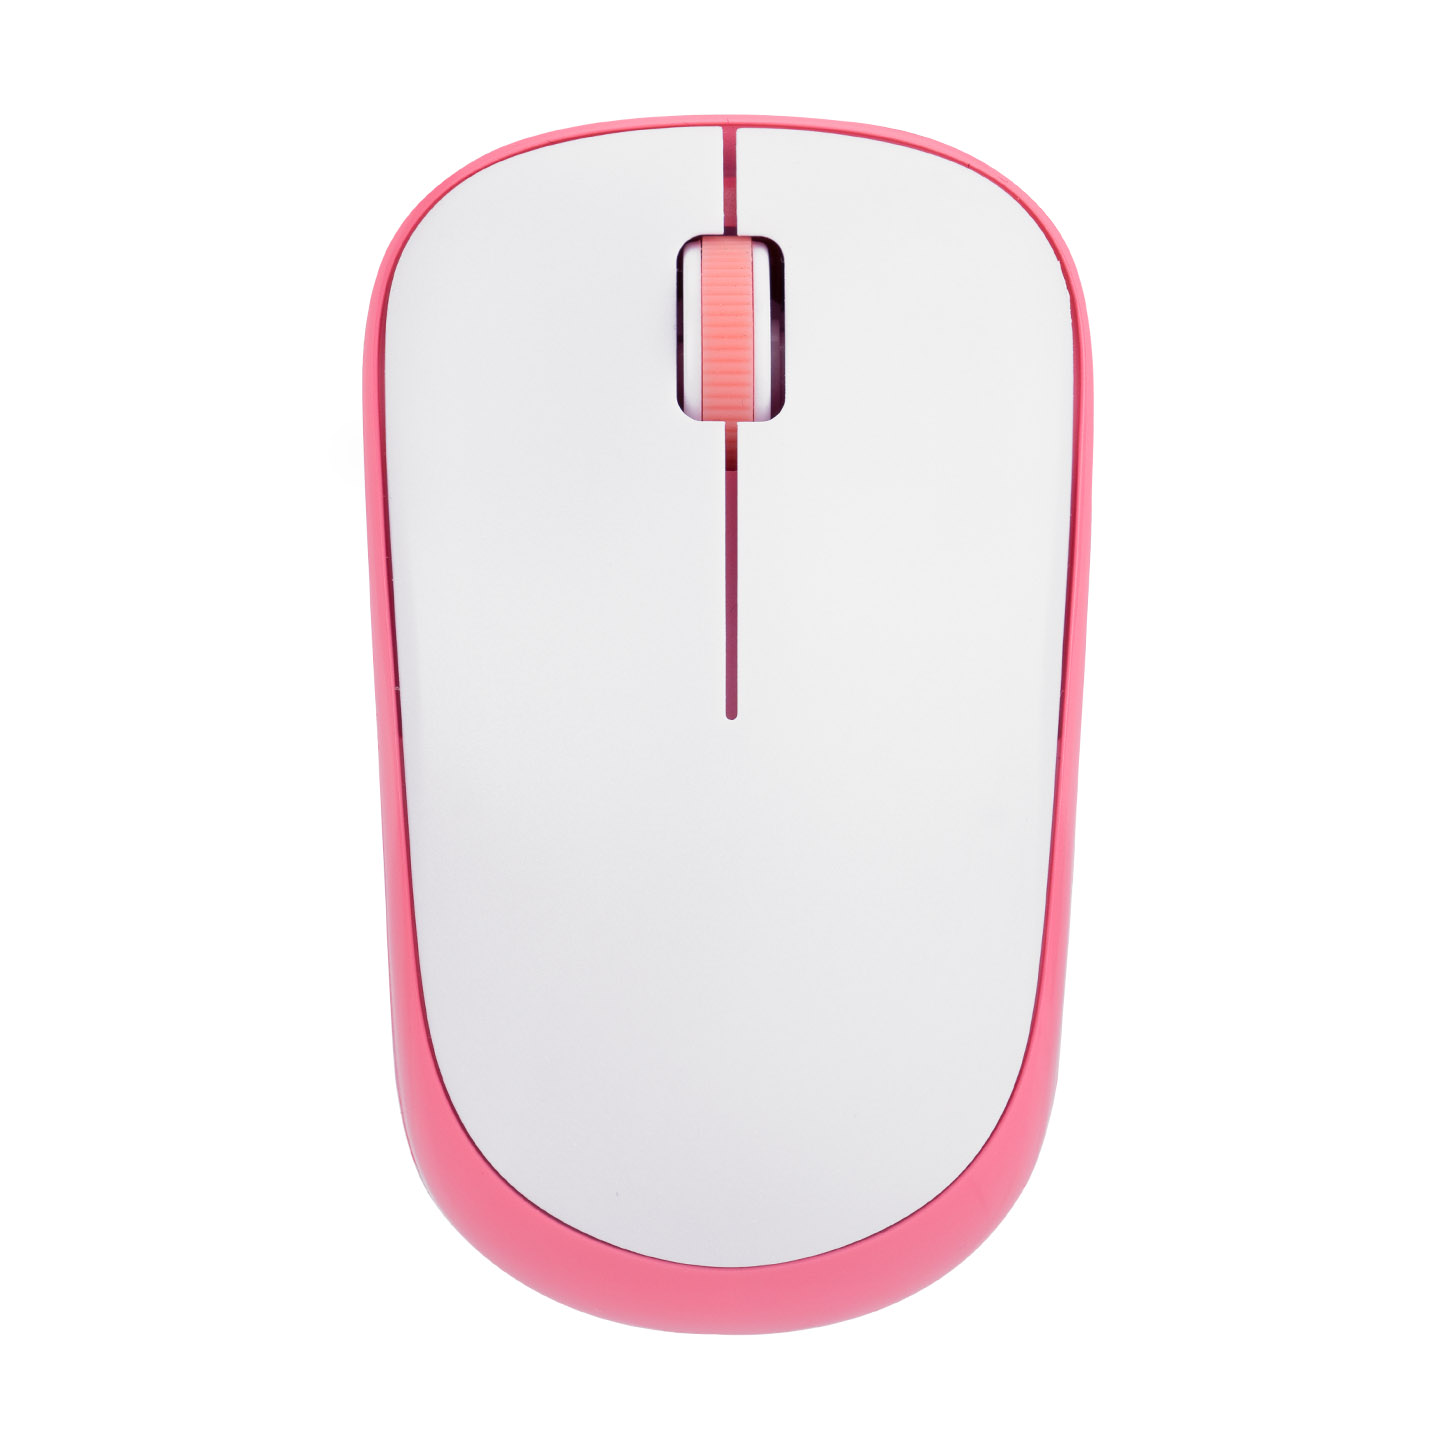 Everest SM-833 Usb Beyaz/Pembe 1200dpi Optik Kablosuz Mouse